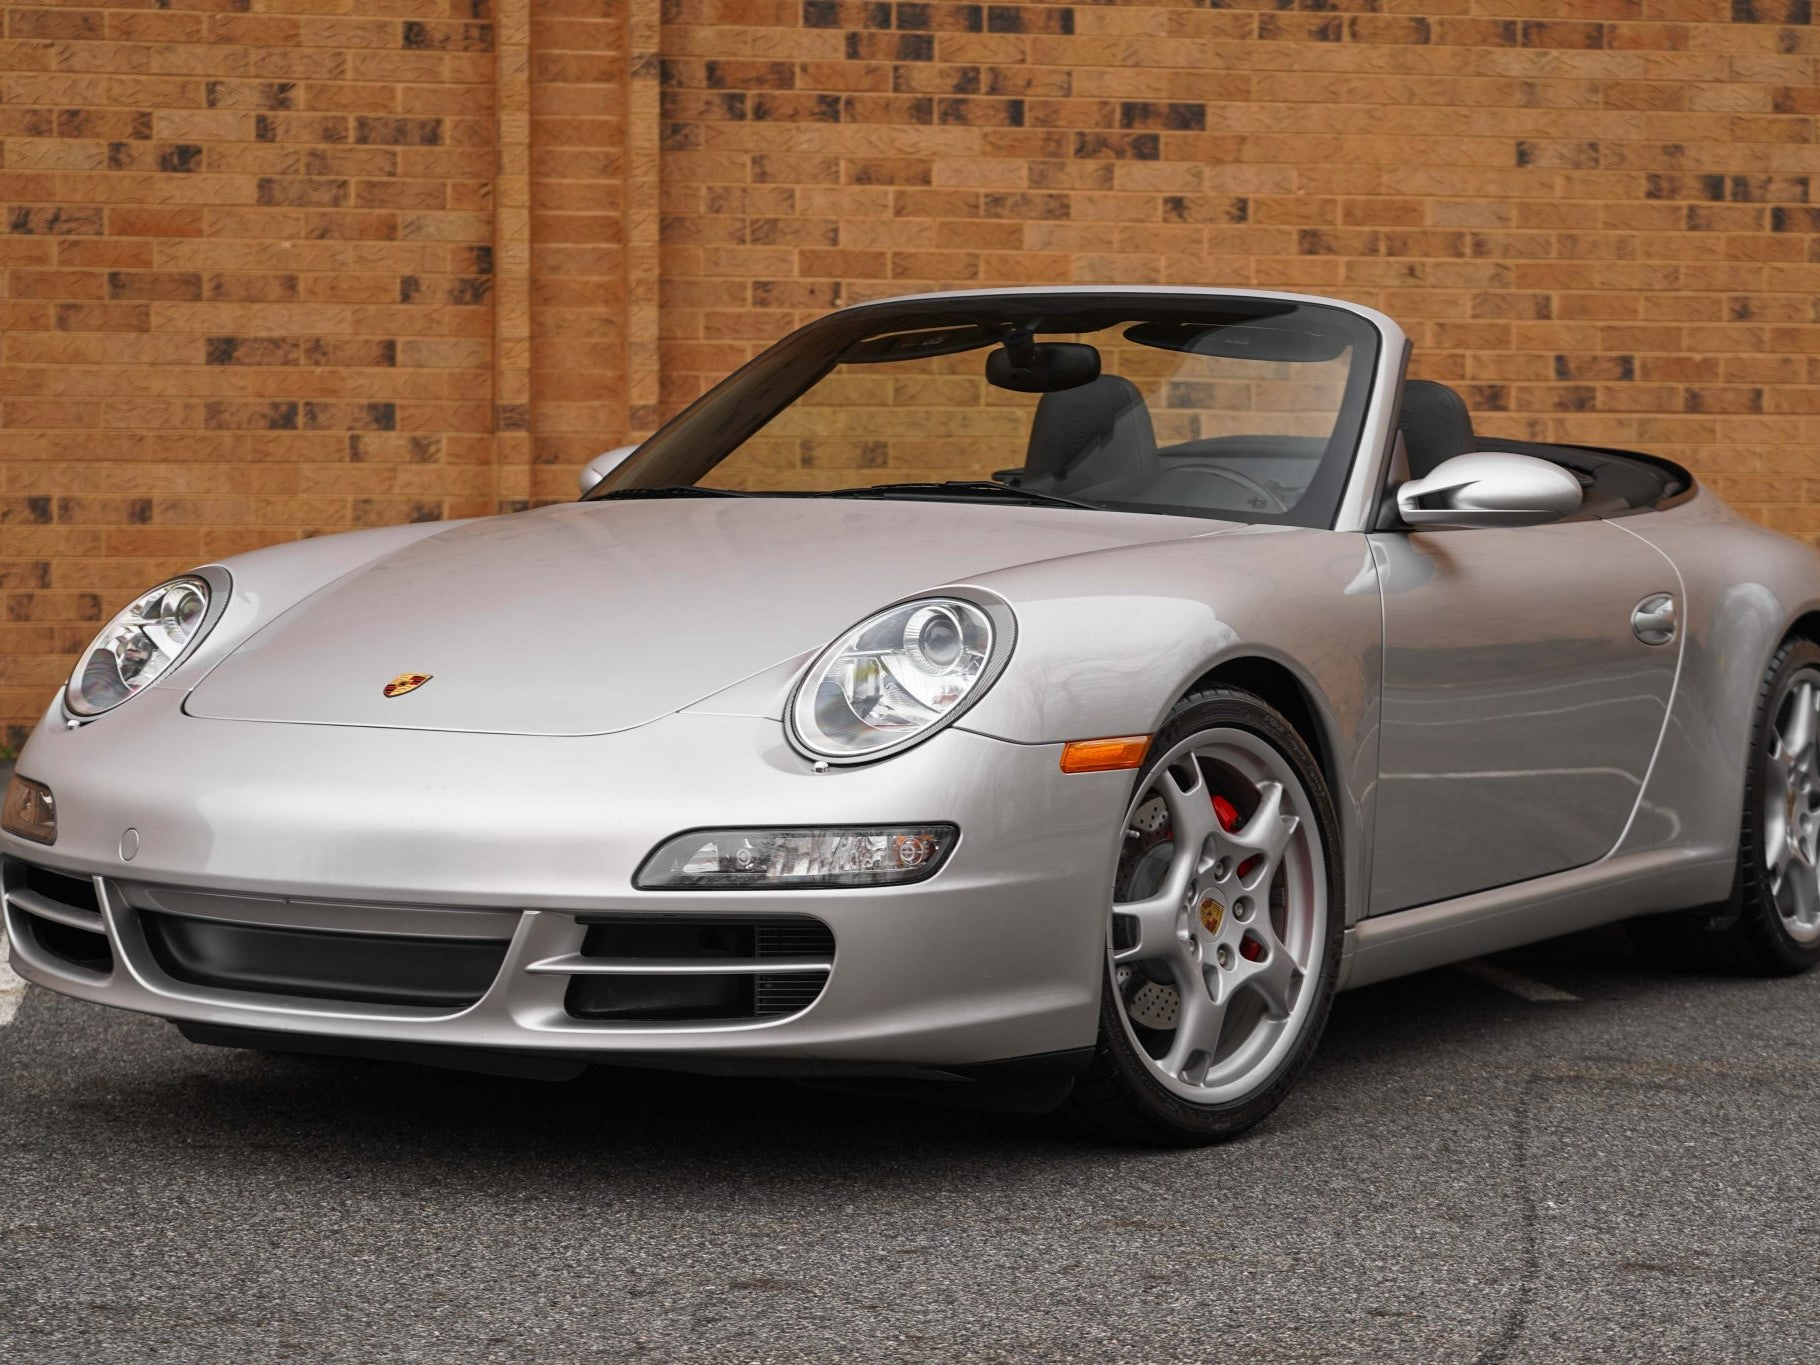 2007 Porsche 911 Carrera S Cabriolet 6-Speed